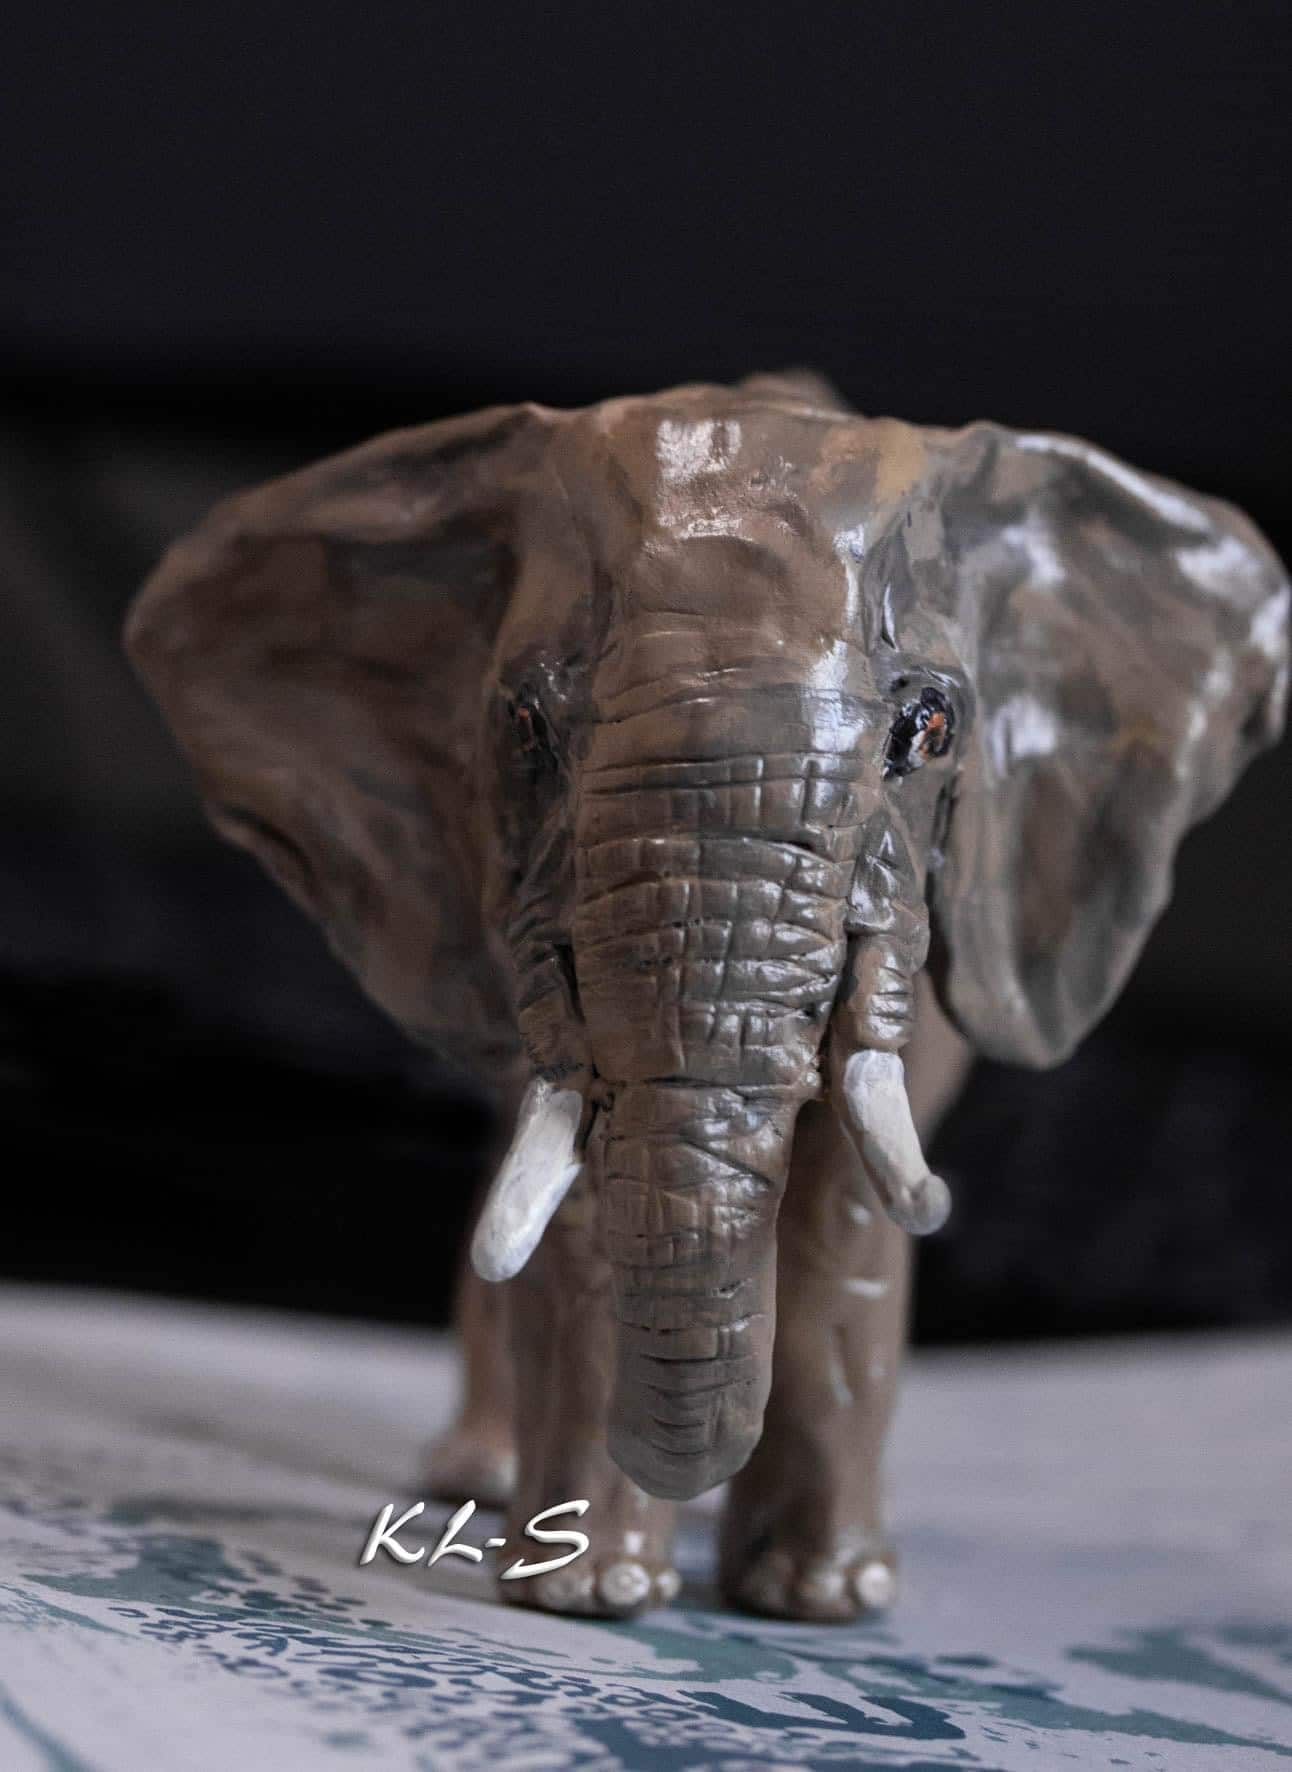 Elephant sculpture made with paper mache clay